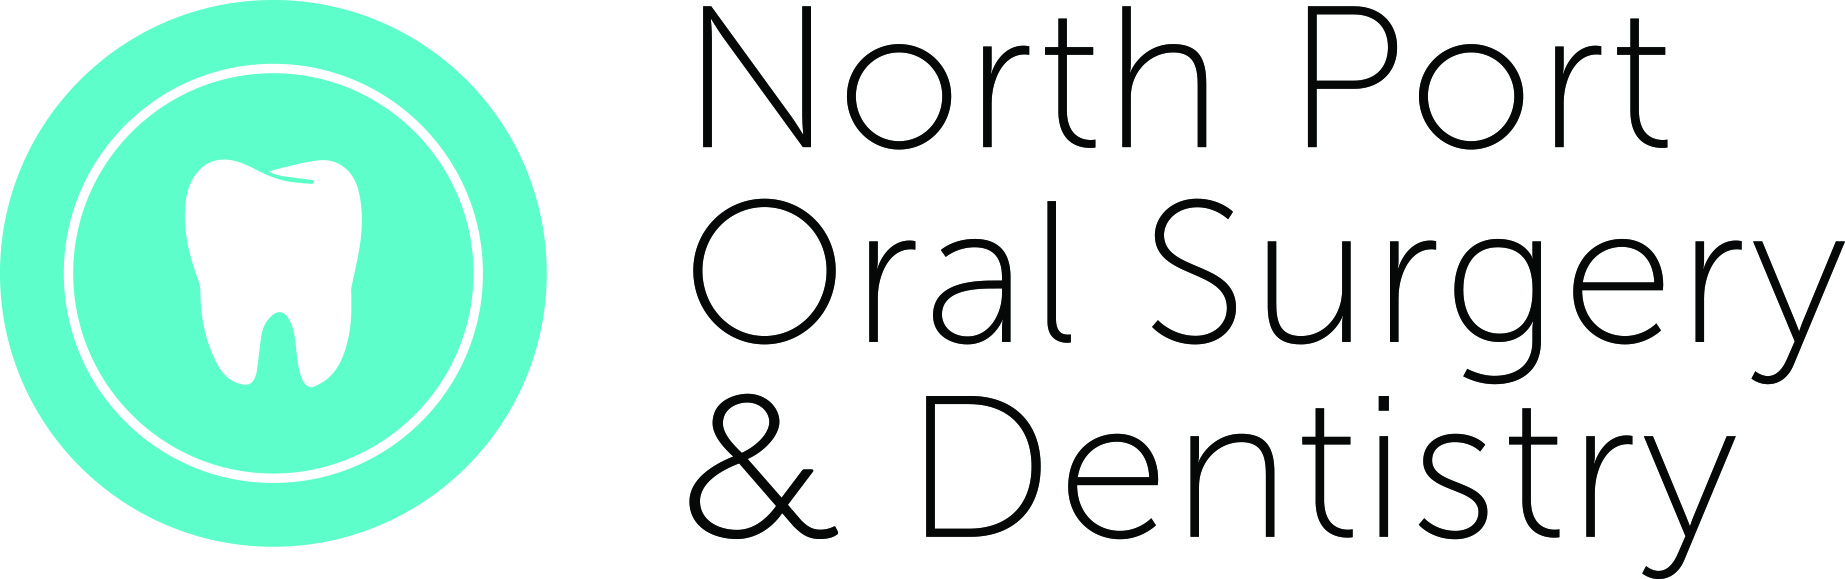 Logo-North Port Oral Surgery & Dentristy